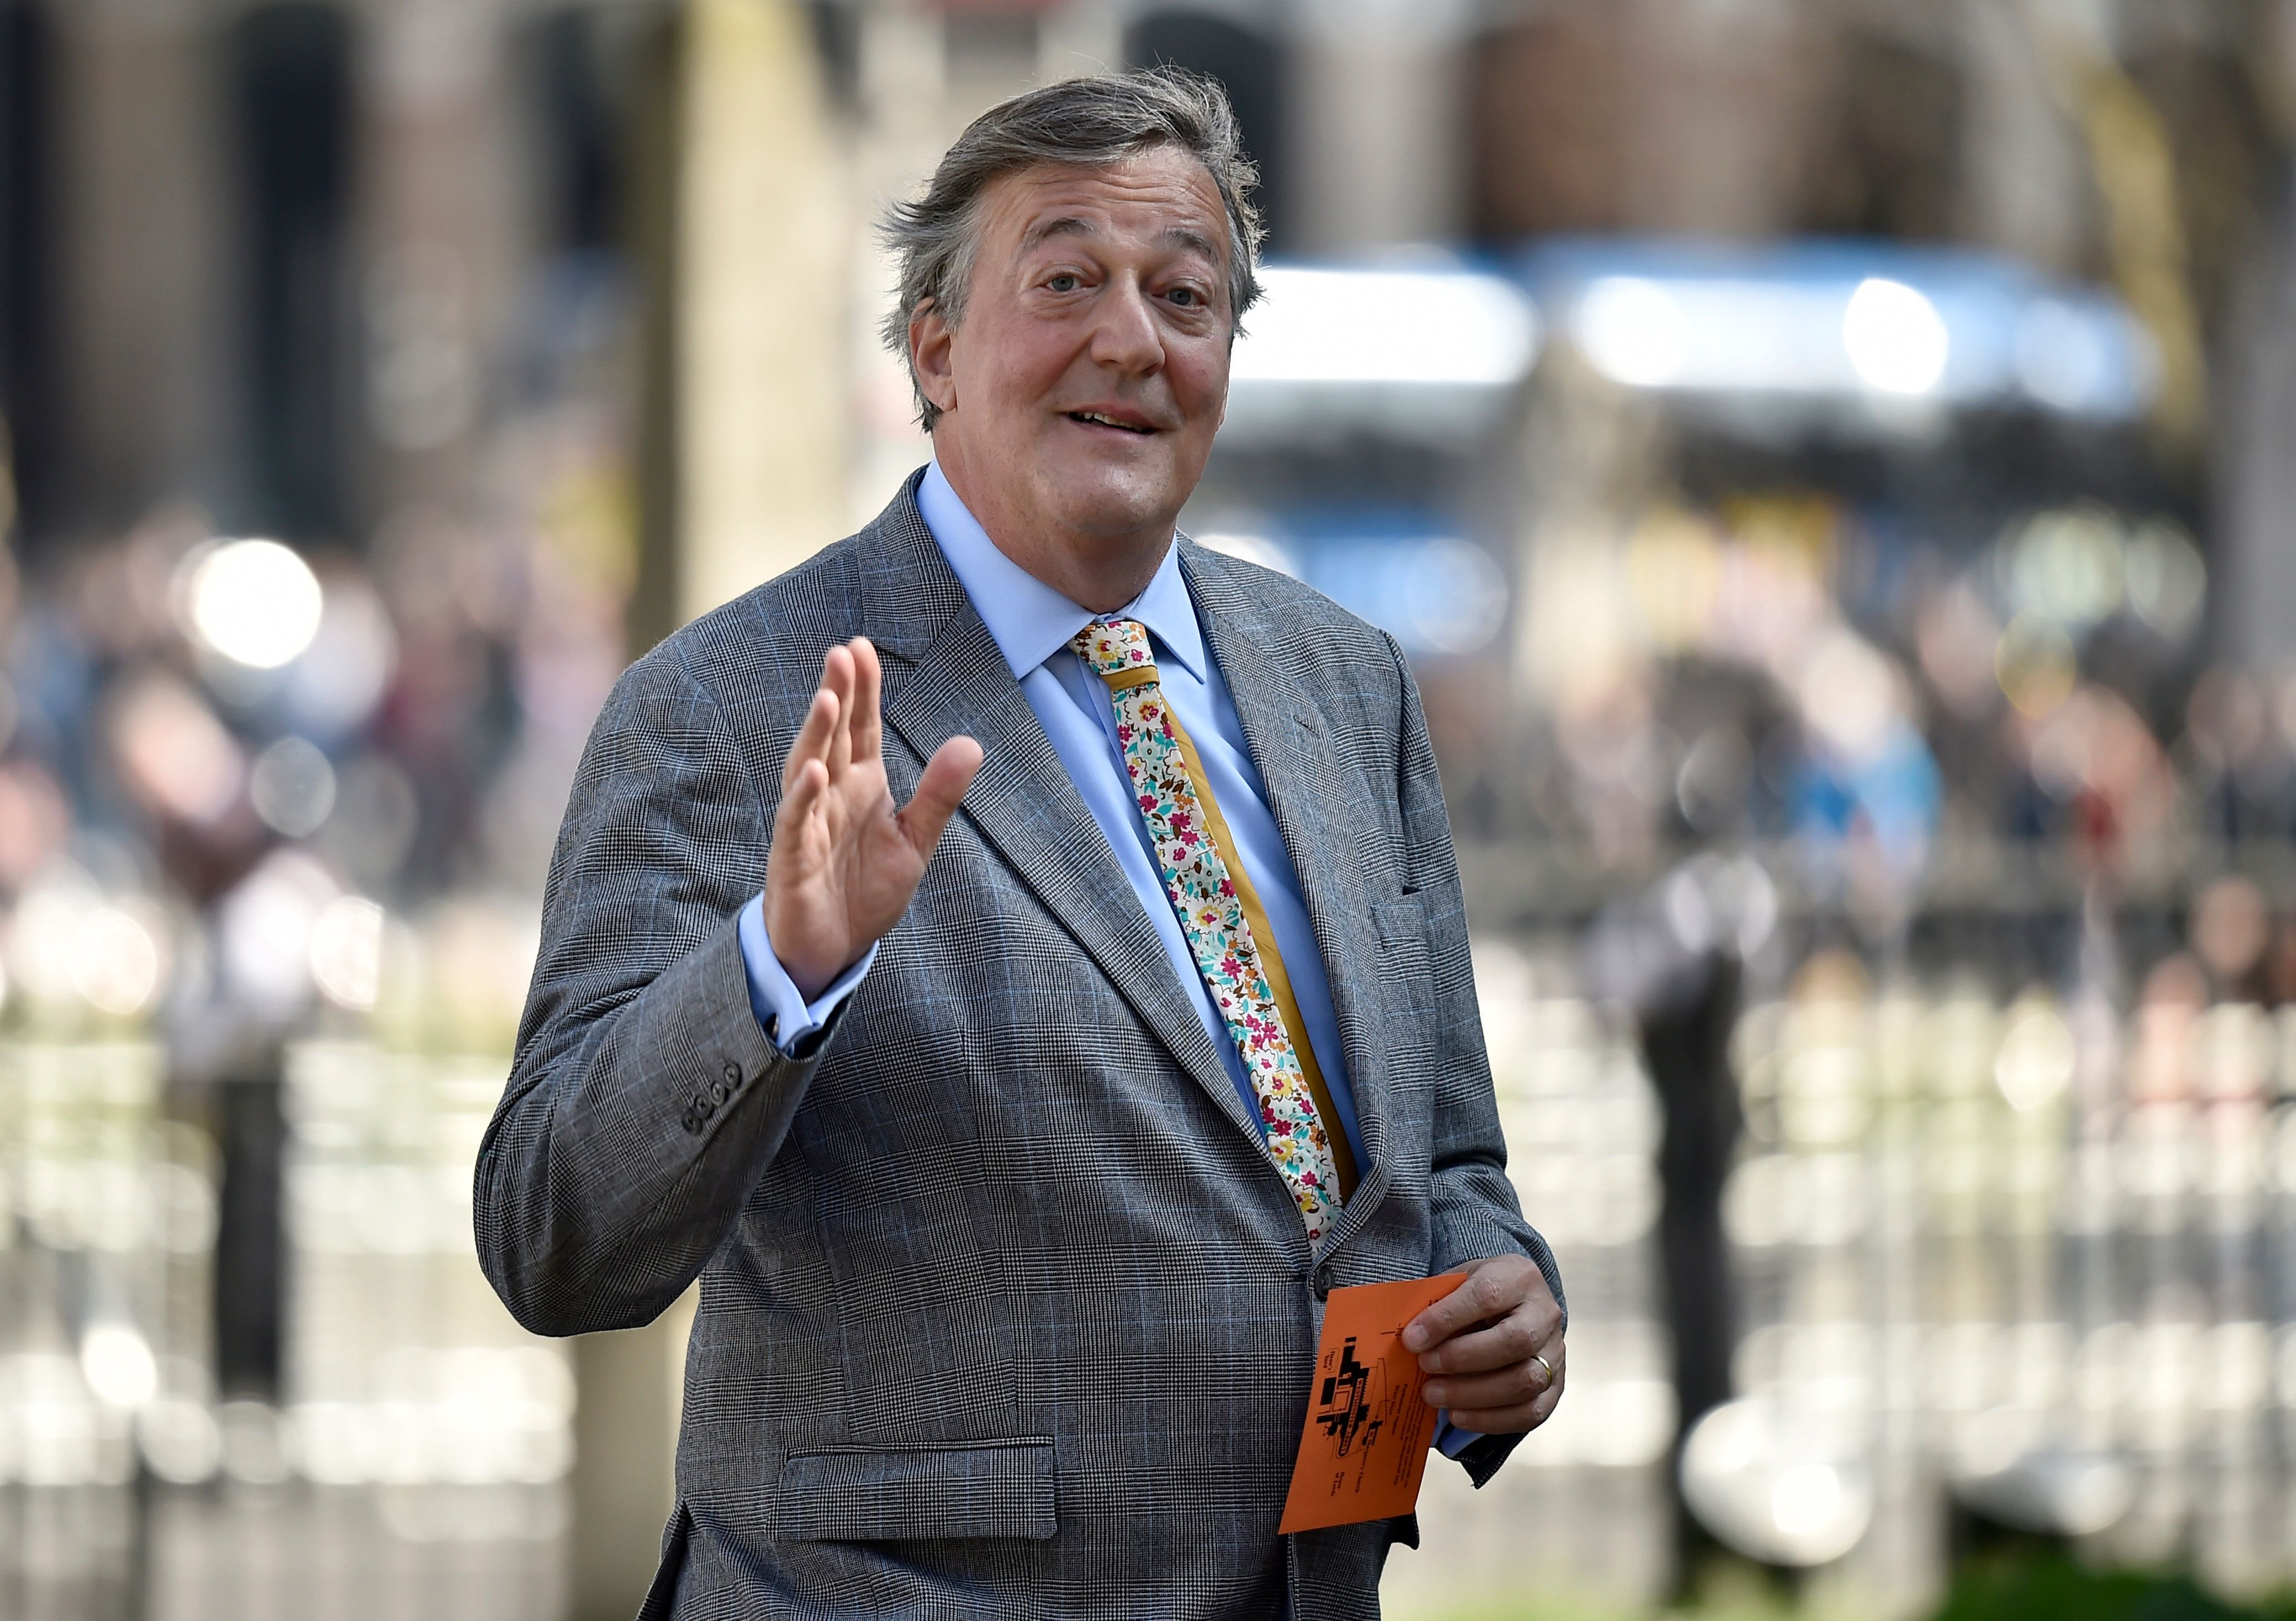 Stephen Fry Brilliantly Explains Why People Believe Donald Trump's Lies